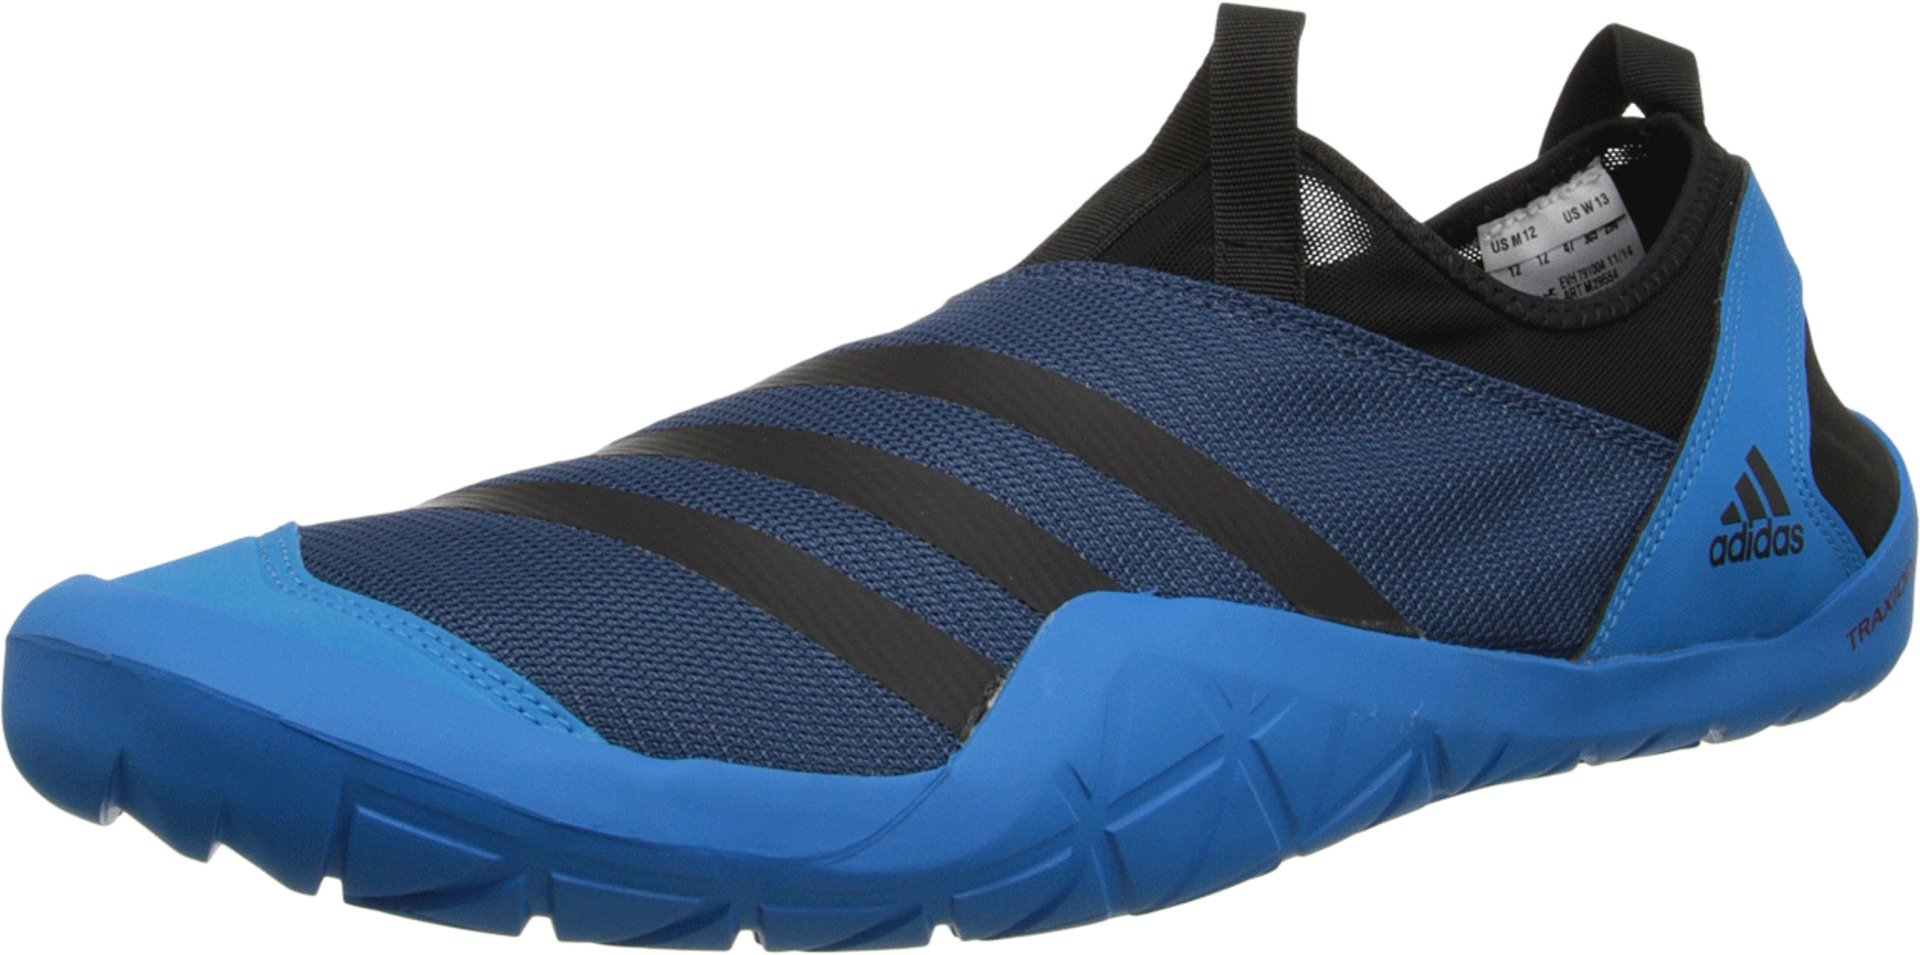 big sale 63c5e 1140a Galleon - Adidas Outdoor Climacool Jawpaw Slip On Water Shoe ...